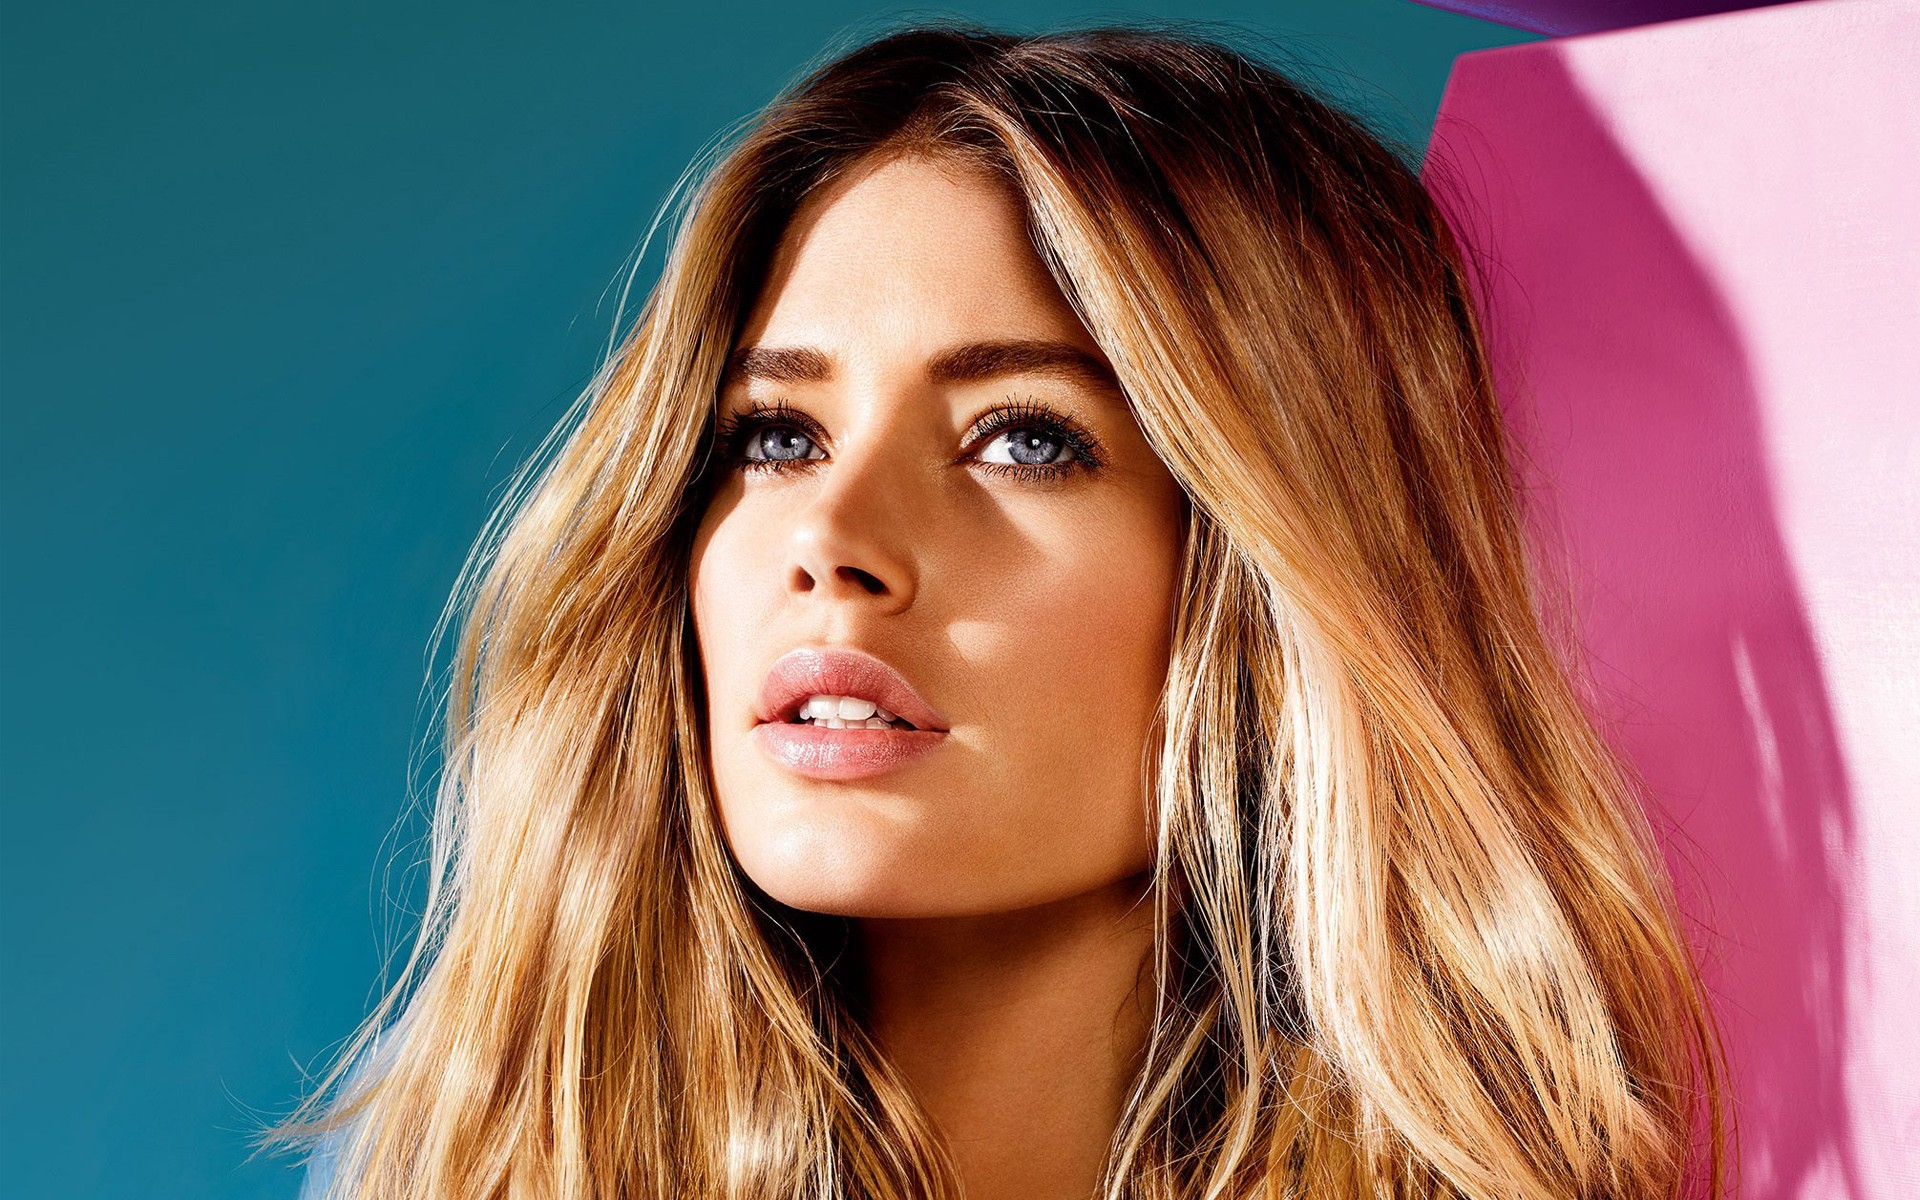 Cute Girl Eyes Wallpaper Doutzen Kroes Dutch Model Wallpapers Hd Wallpapers Id